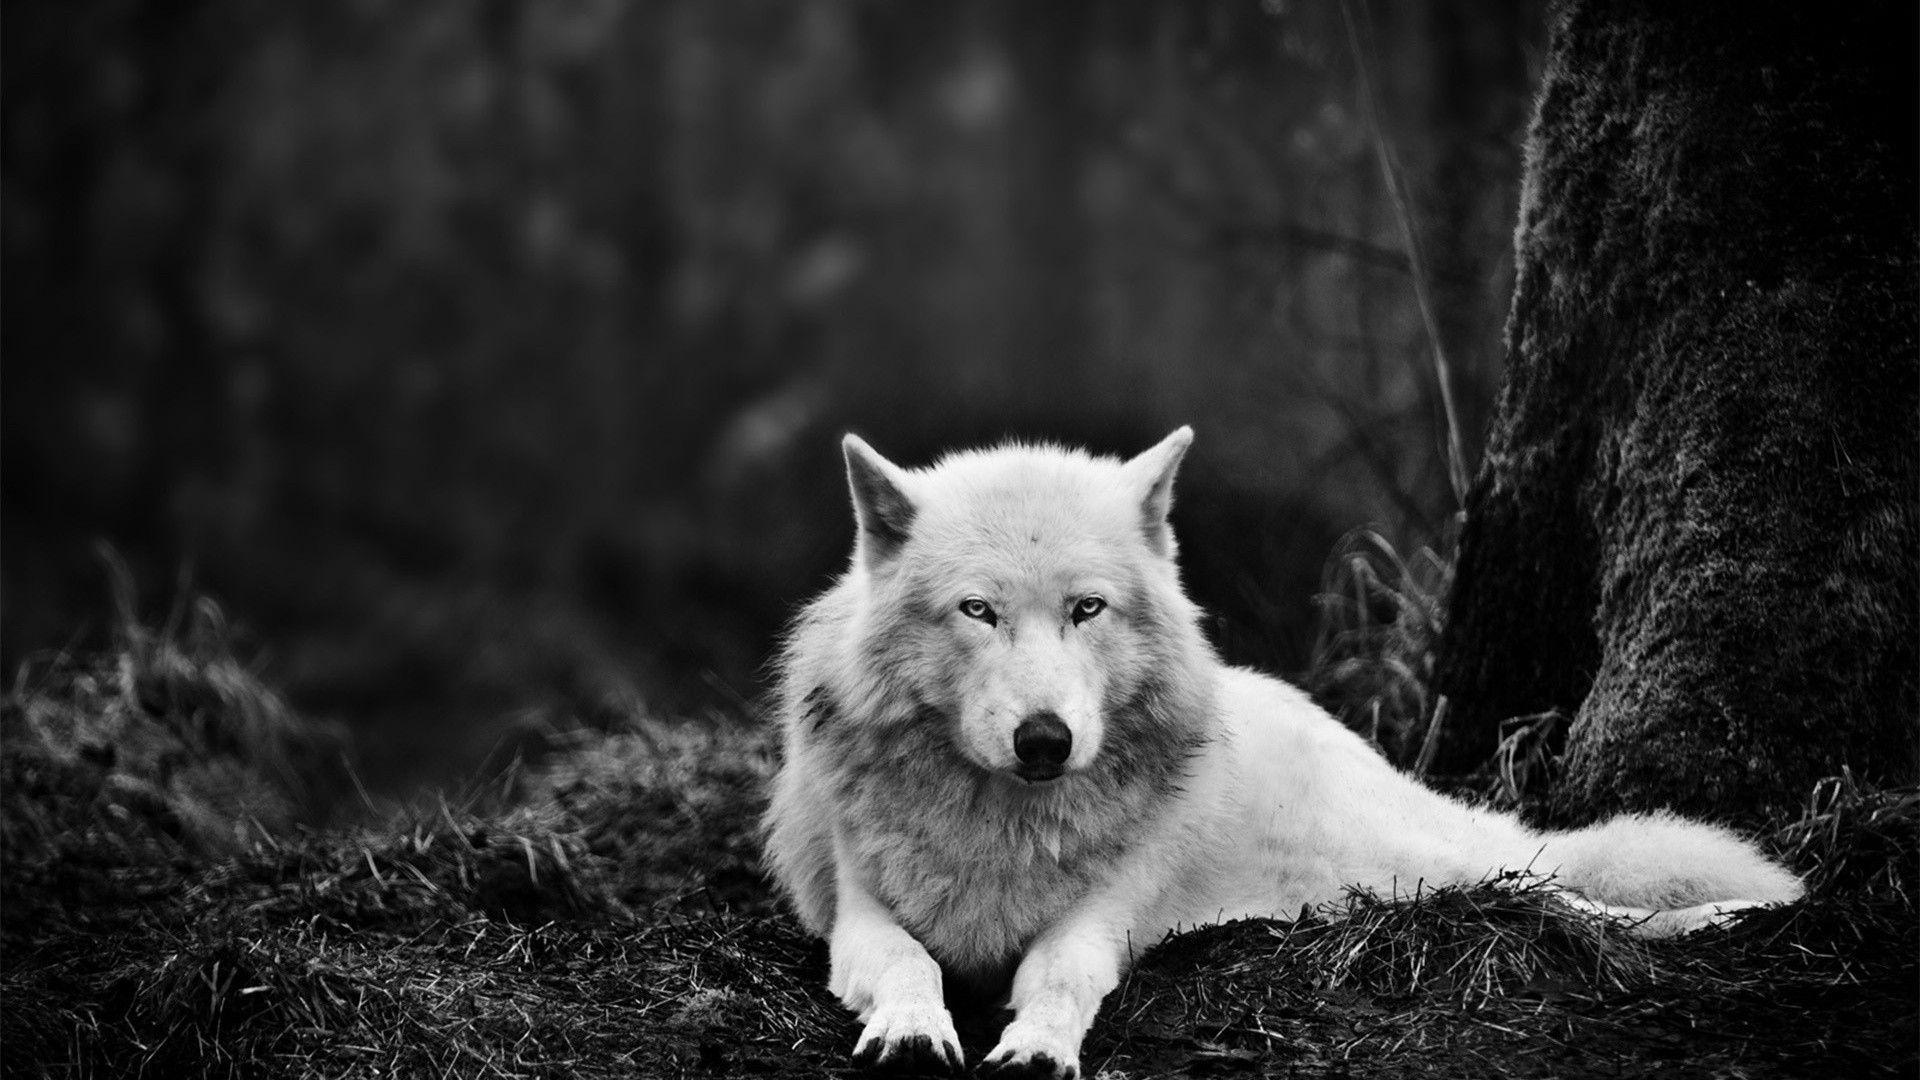 Free HD Wolf Wallpapers - Wallpaper Cave